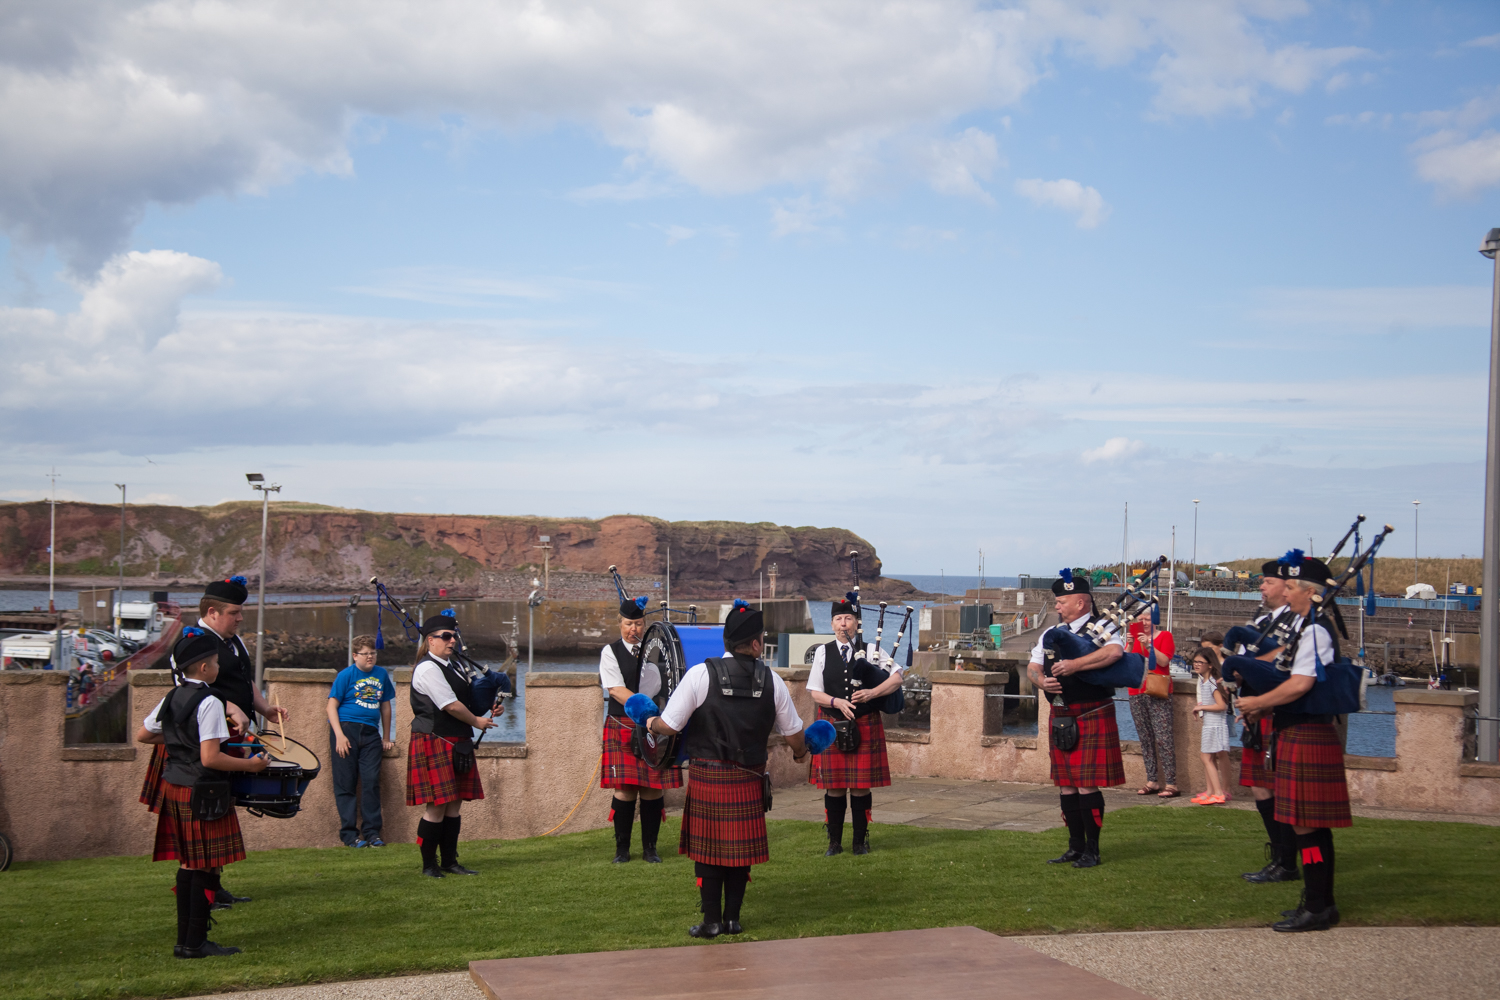 PICTORIAL_BERWICK_eyemouth-gunsgreen-extravaganza-photography-entertainment-party-event-photographer-harbour-gary-dunn-dancers-stilts-performances-speeches-day-out-summer-4542.jpg